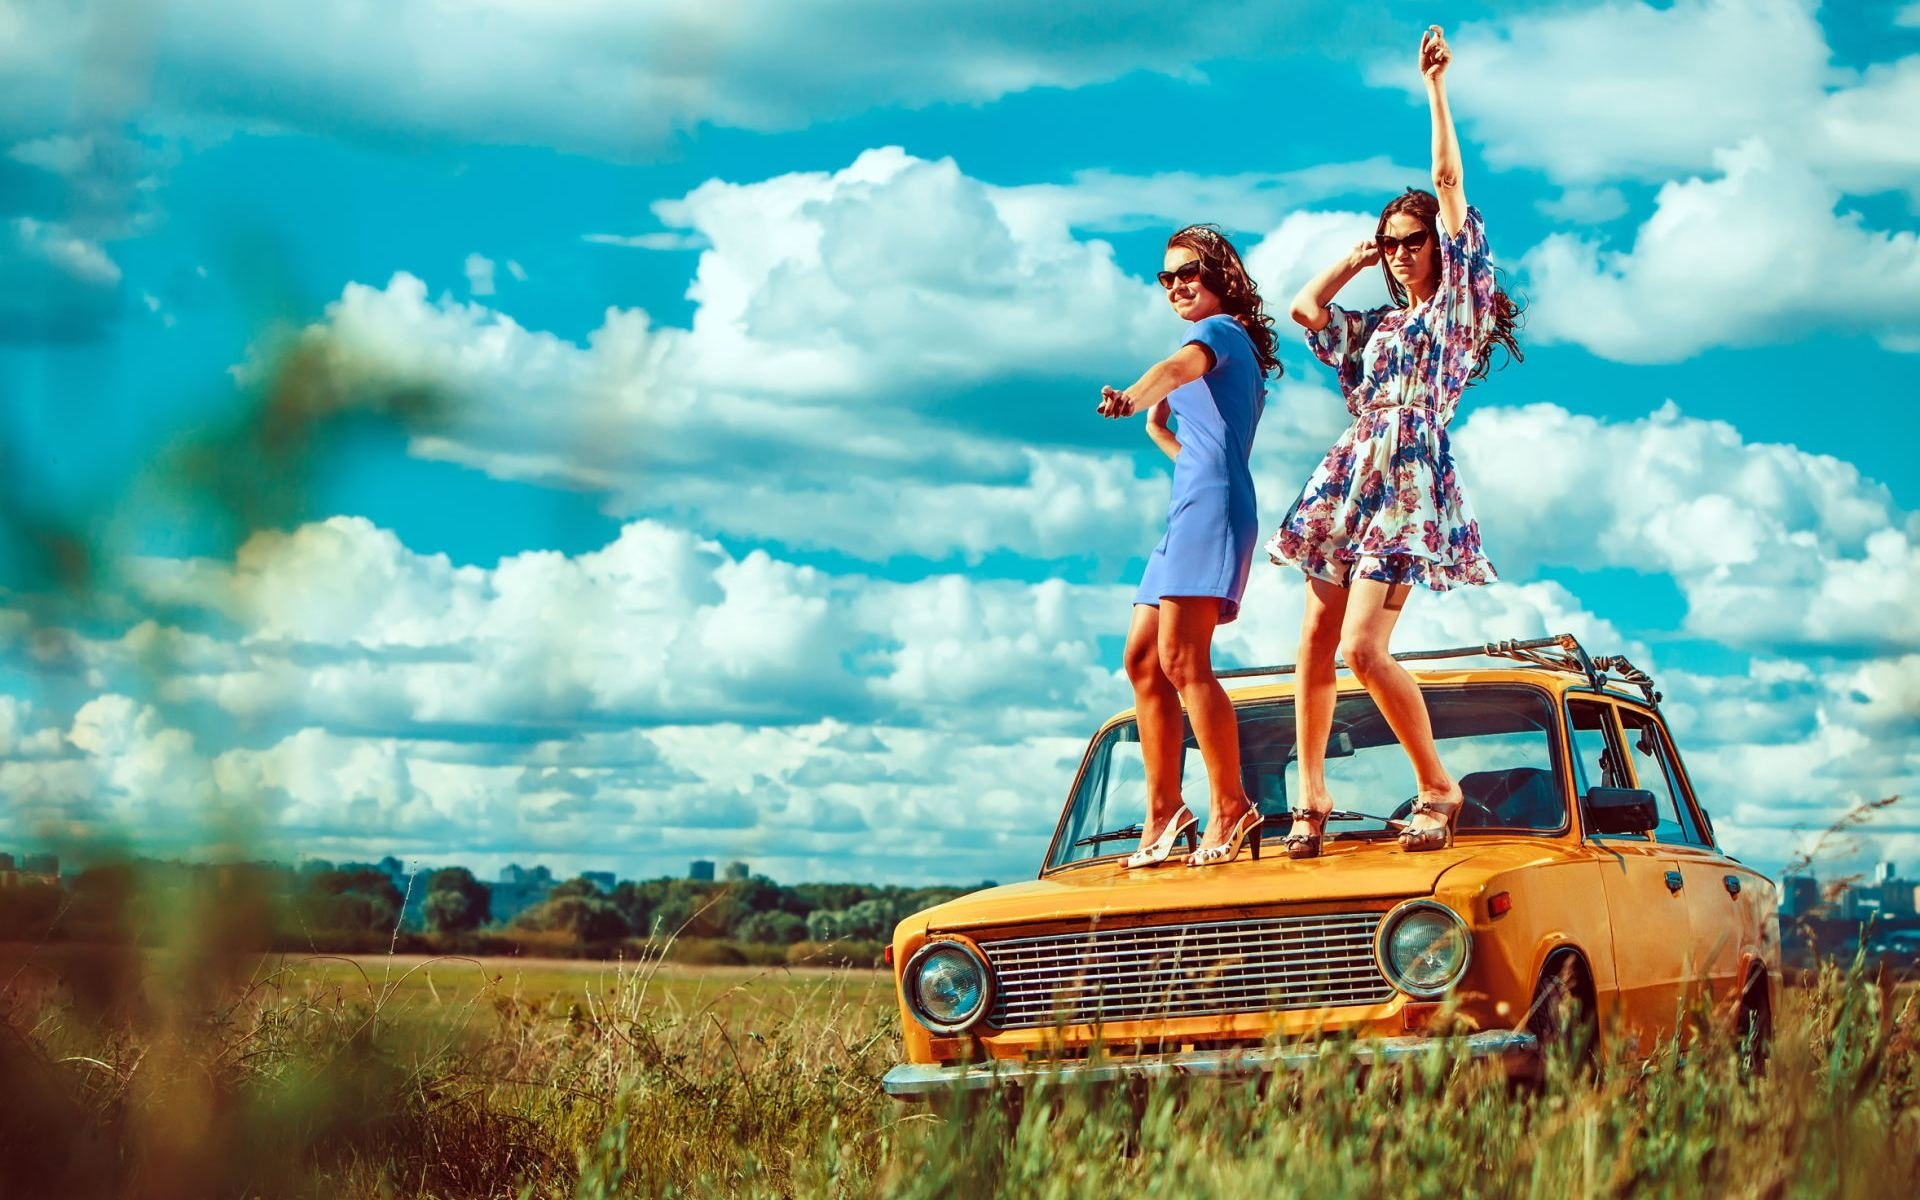 Women - Mood  Girl Model Old Car Wallpaper